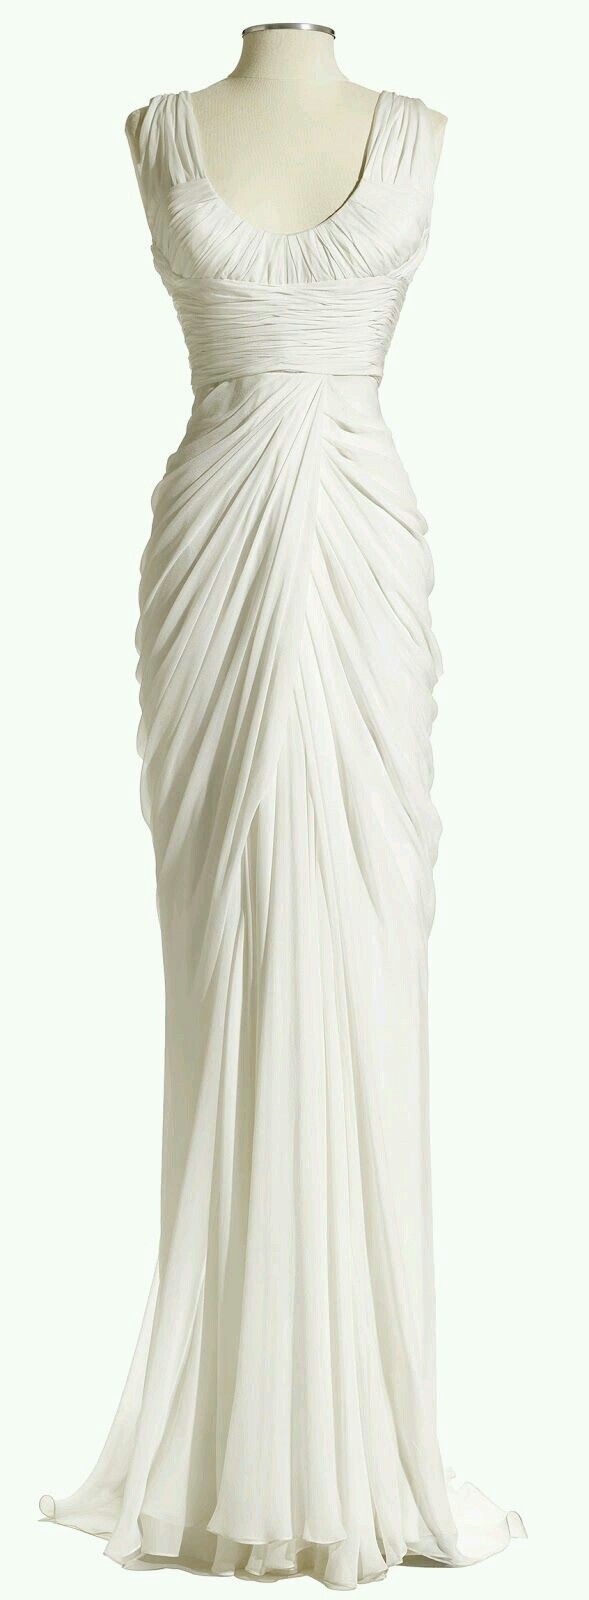 grecian goddess wedding